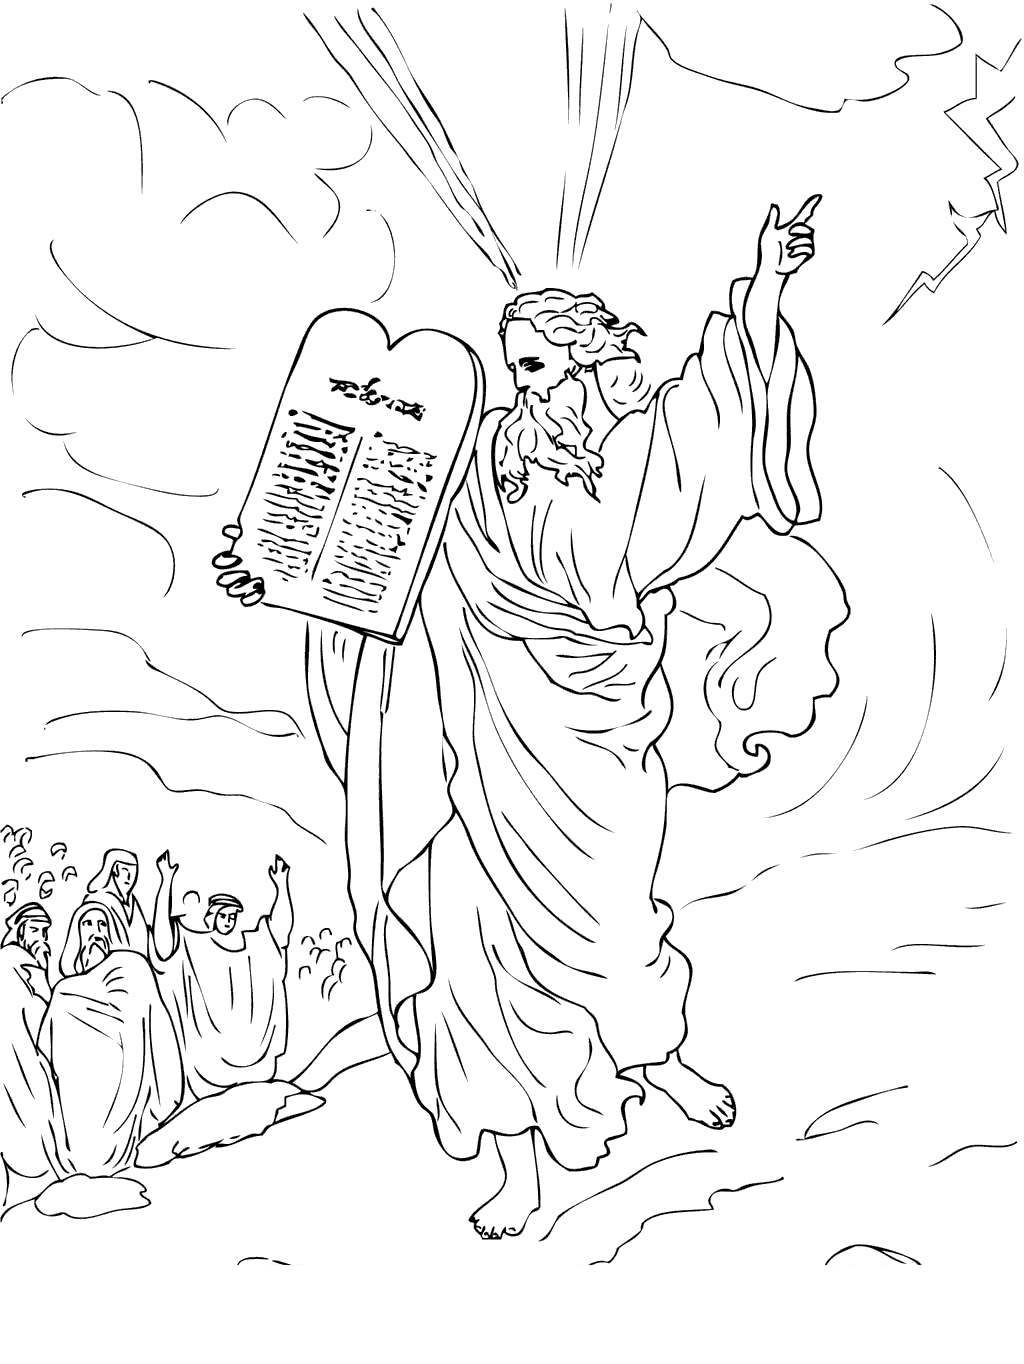 The Golden Calf Coloring Page Golden Calf Coloring Pages Moses Black And White Kidcolorings